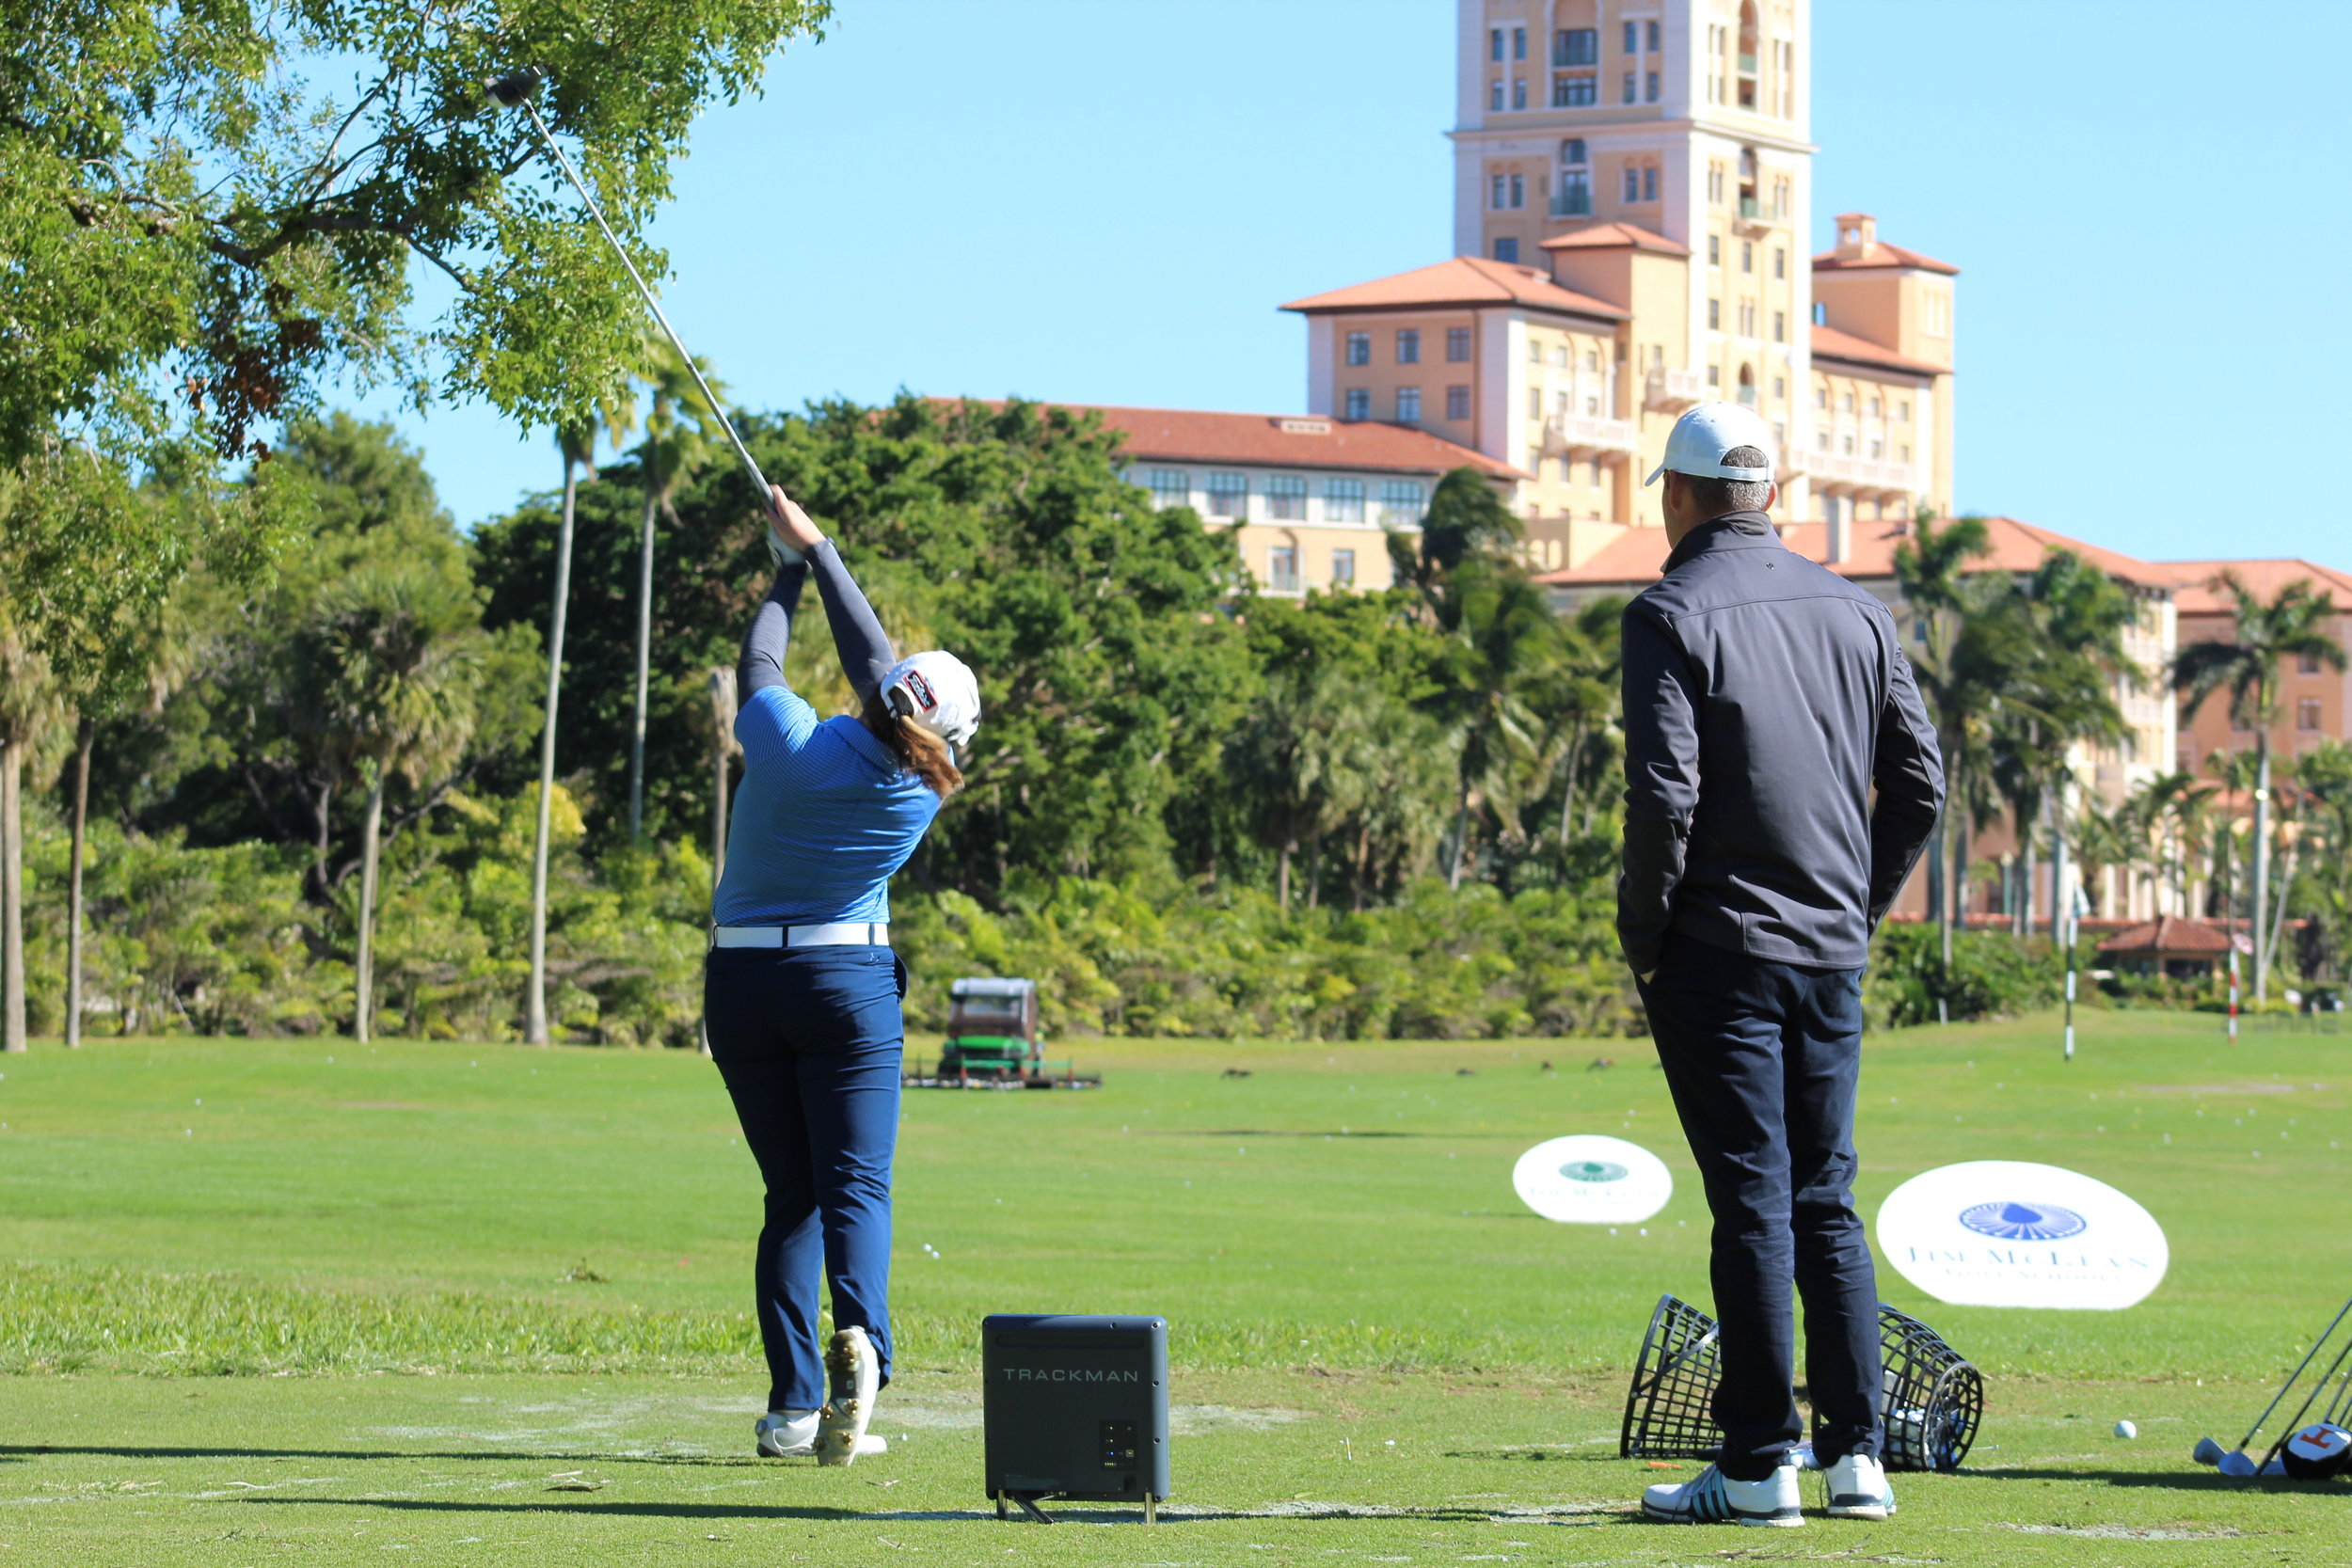 2 DAY PRO SESSION EXPERIENCE - This program is designed for the golfer looking for multiple days of instruction while still getting lots of on-course play everyday. Program consists of 8 hours with your instructor- 3 hours on instruction each day from 9-12-Lunch with your instructor-Play 9 holes after lunch on your ownFor an additional cost, you can continue playing the full 18 and even have your instructor join you for on course playing lesson for the 9 or 18 holesFully customization program: Pick any available instructor and pick any days that work for your schedule.